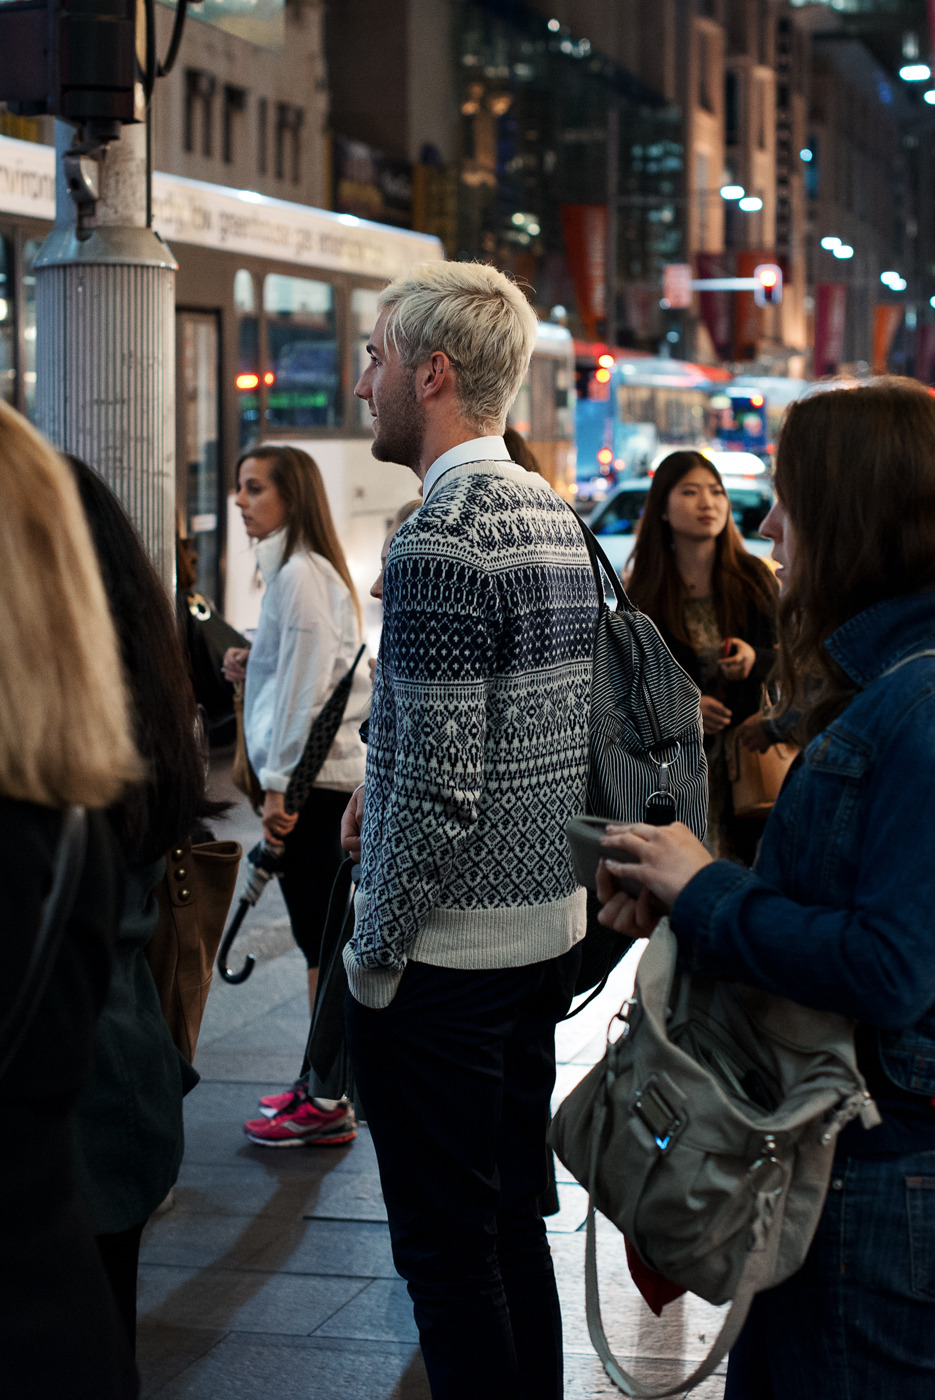 Cooler nights ahead. Similar look: Jack Spade Fair Isle Sweater.